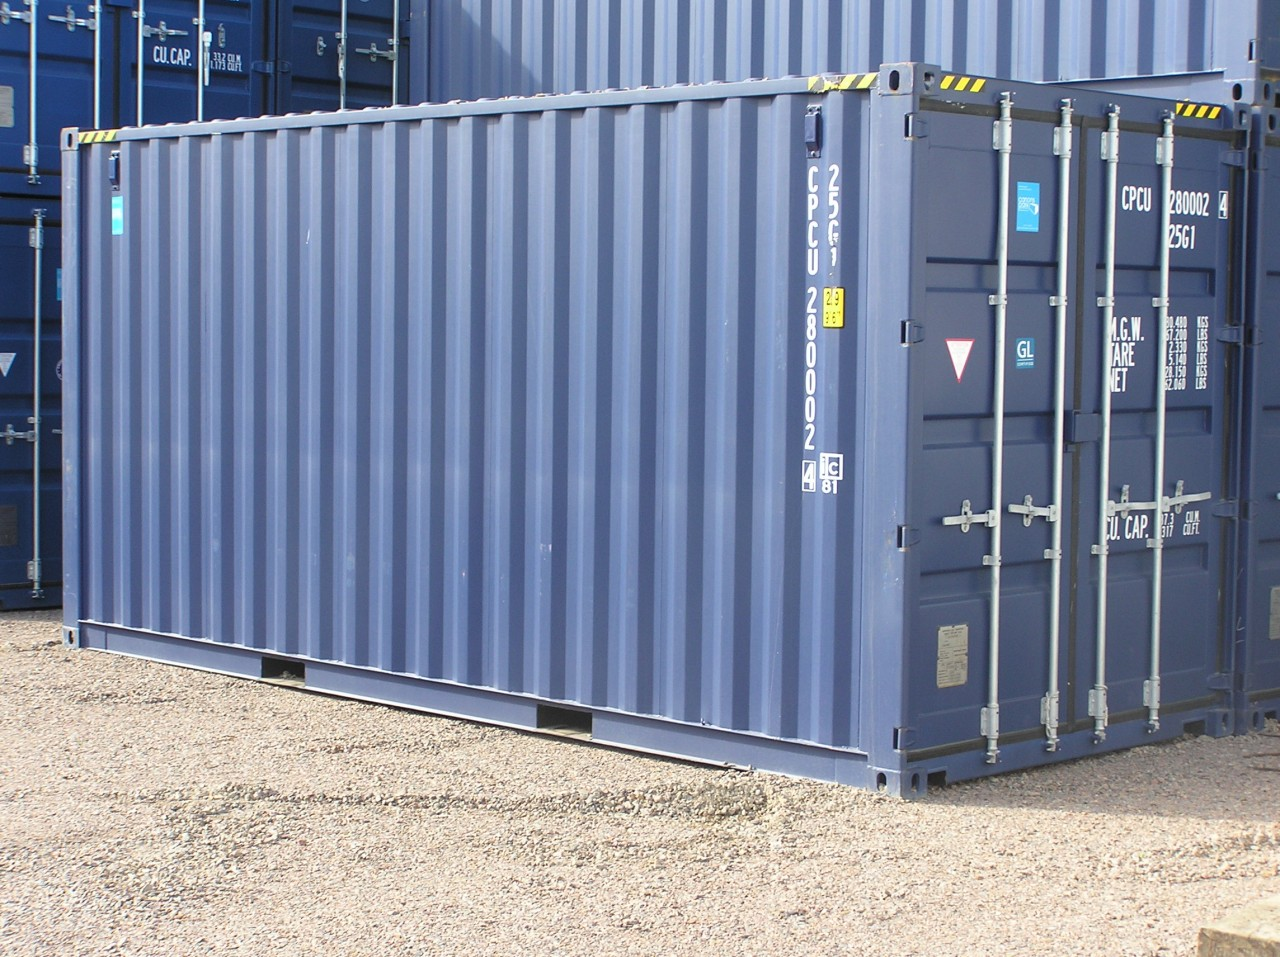 Ny 20ft extra hög container